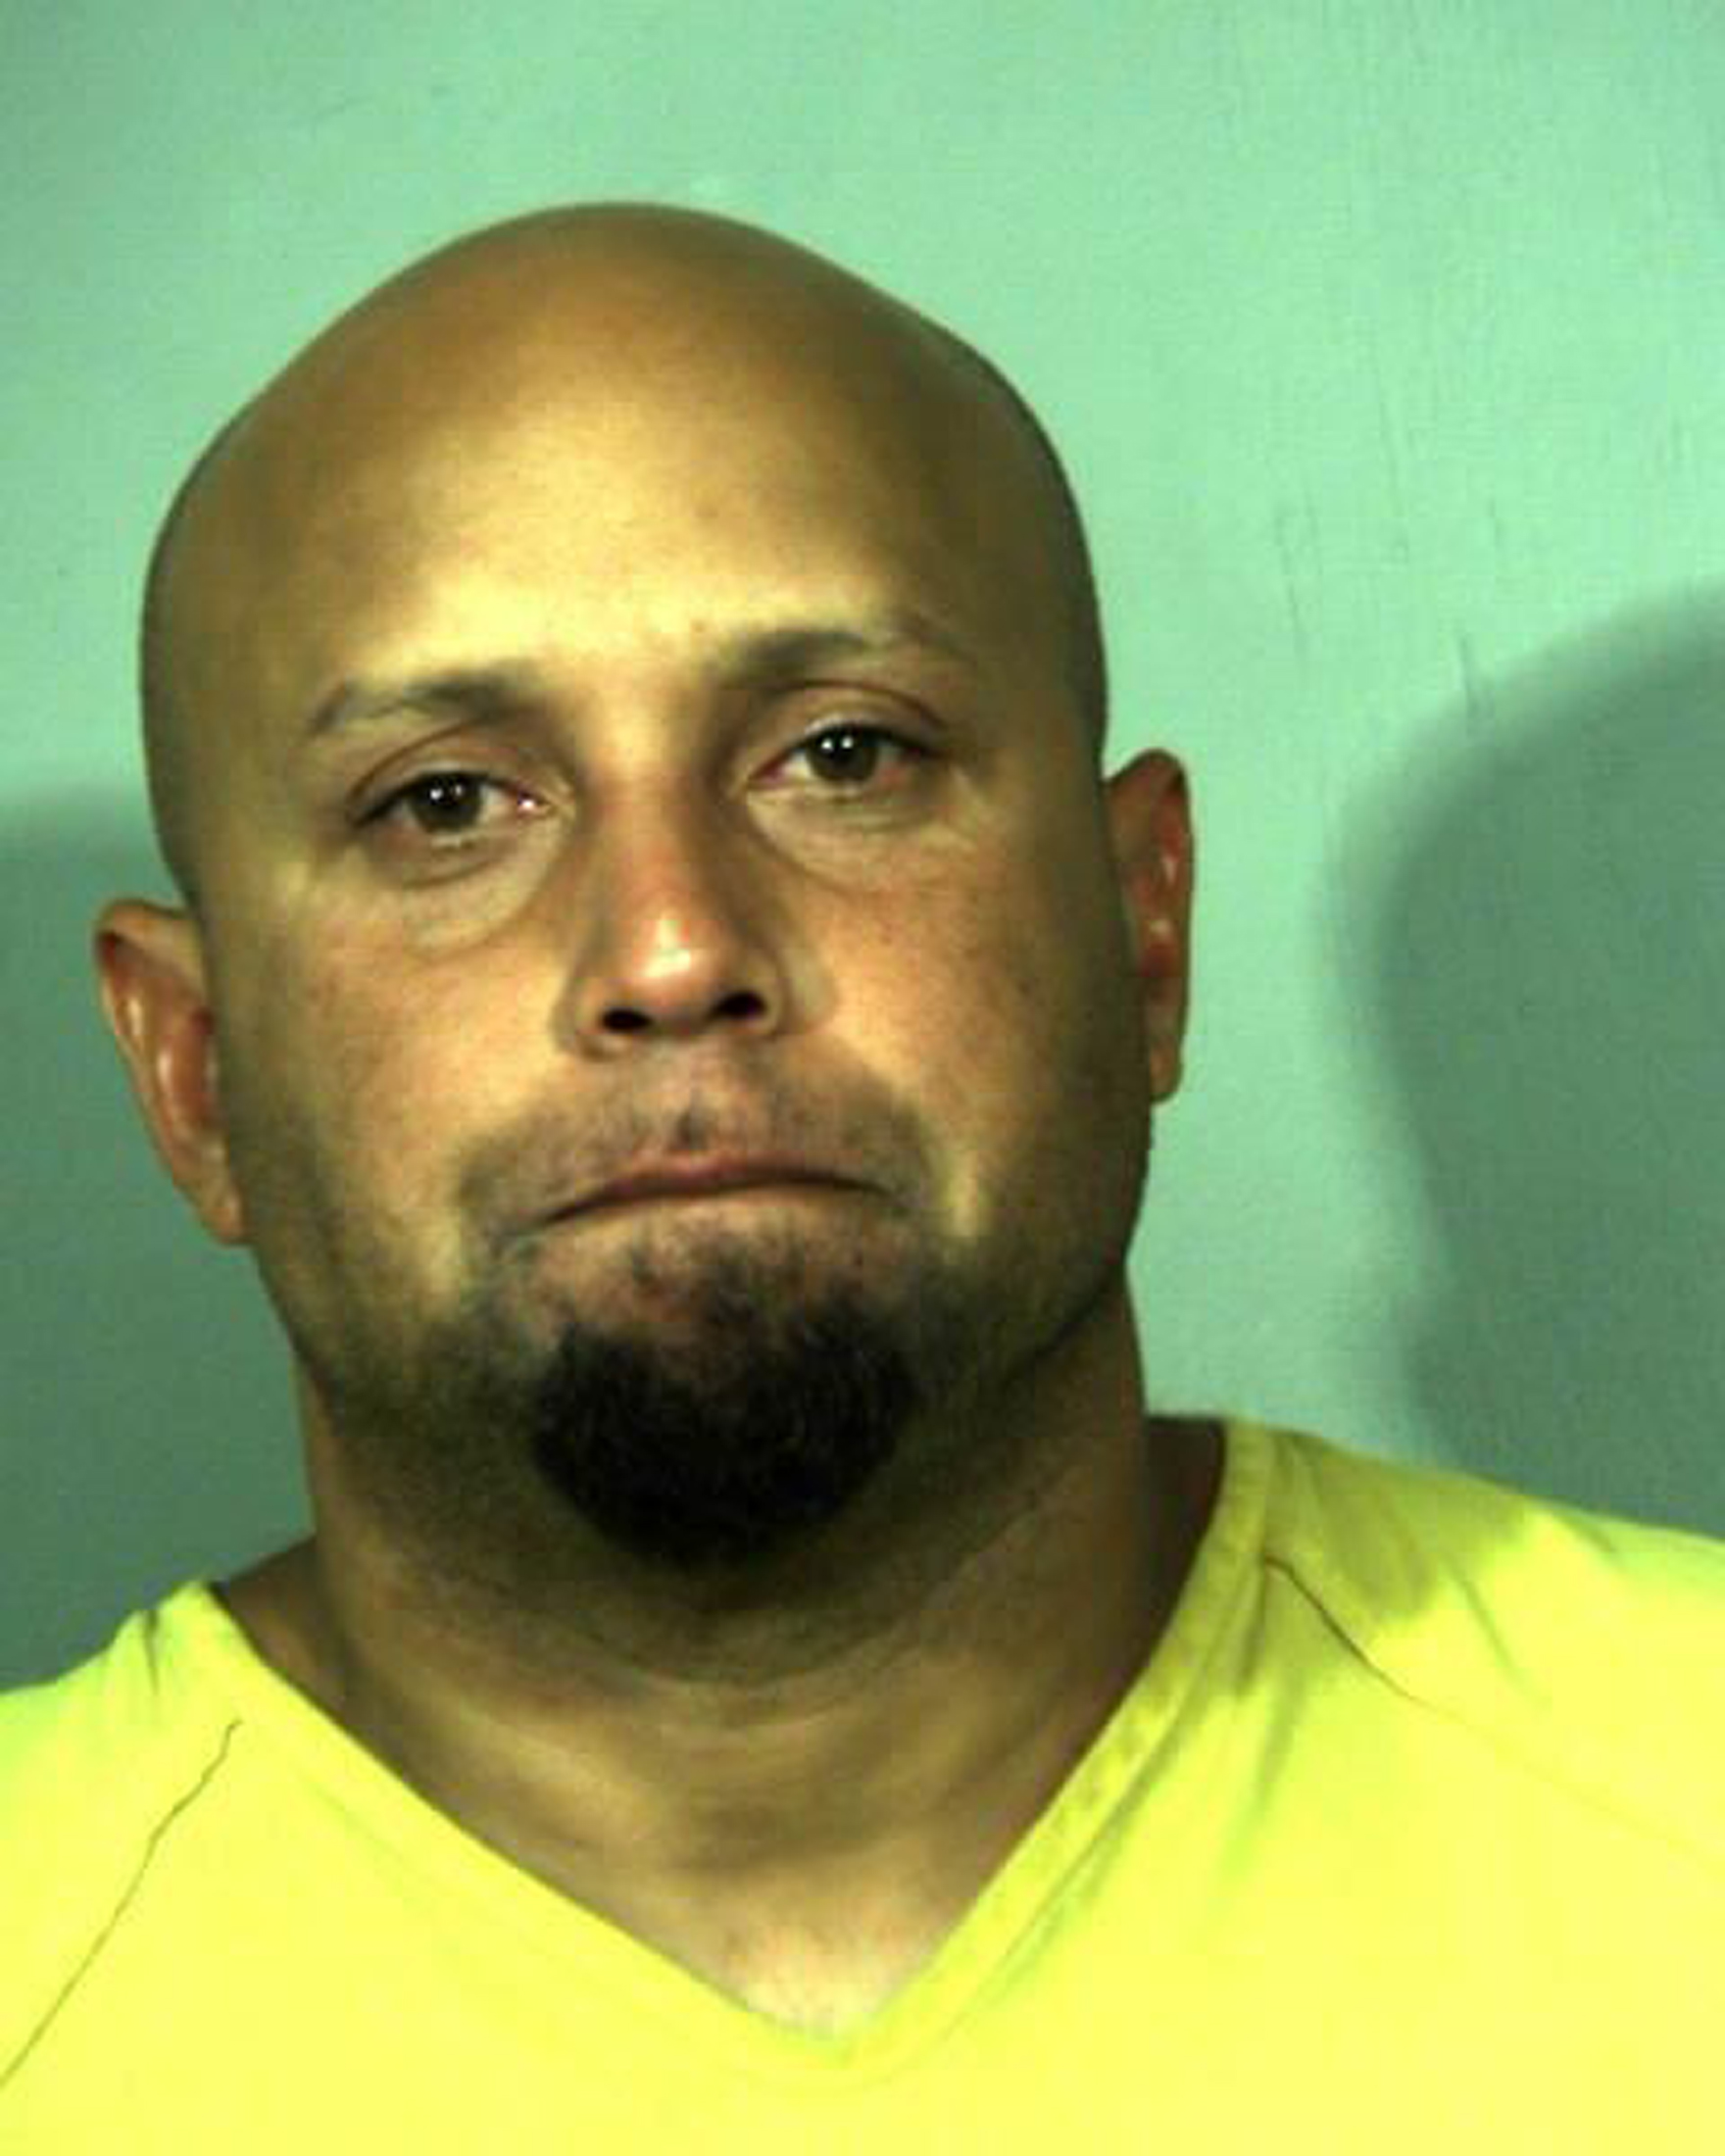 Alleged White House fence jumper Omar Gonzalez, 42, is shown in this New River Regional Jail booking photo released on September 23, 2014.